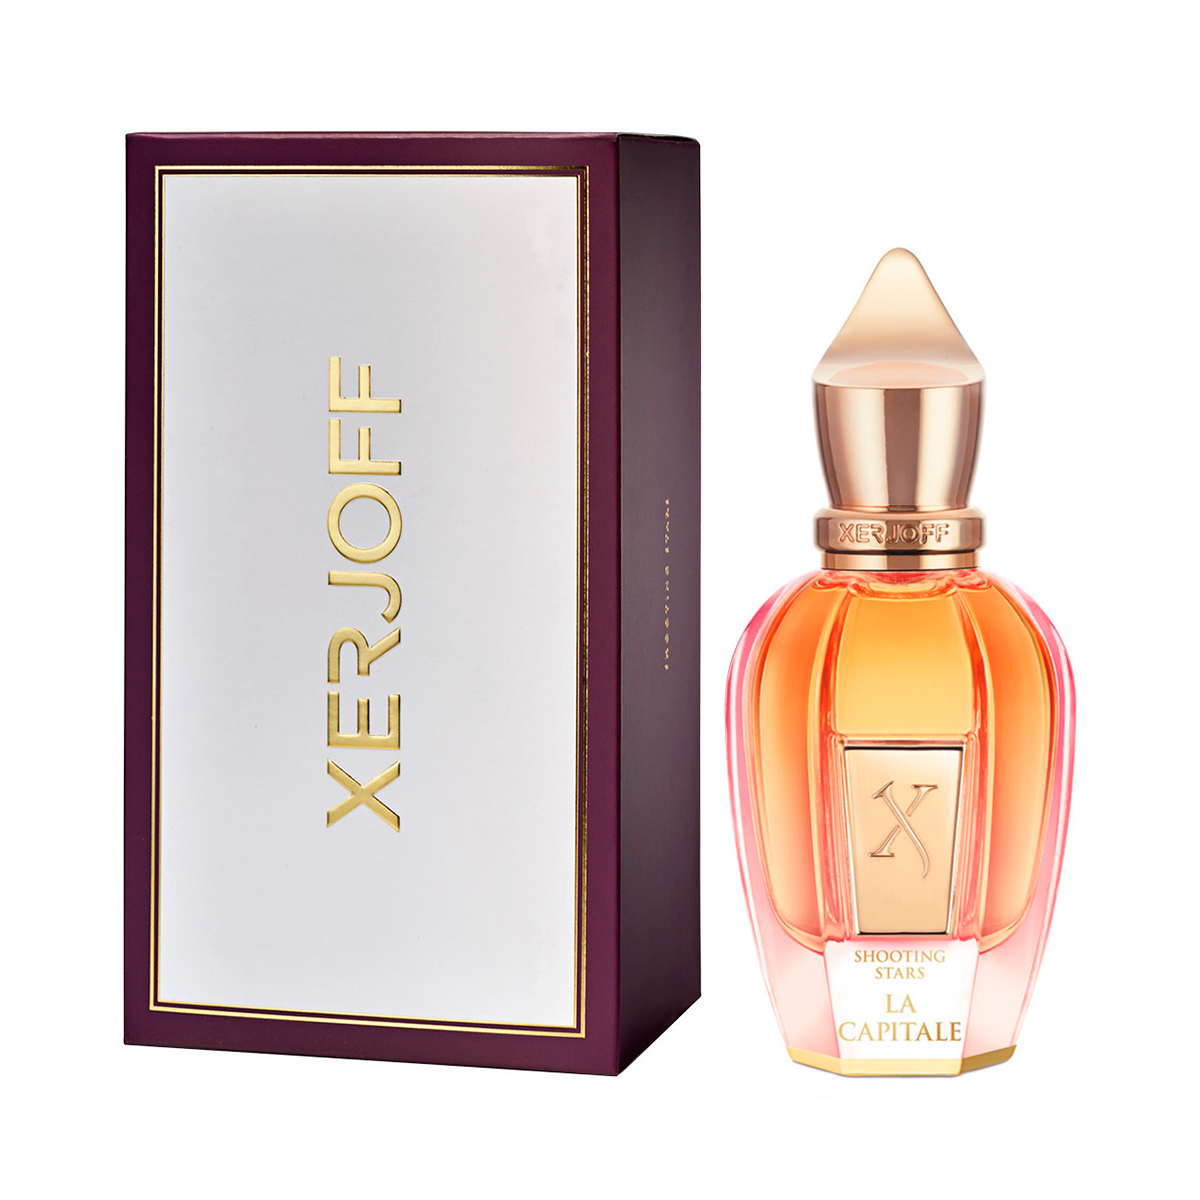 La Capitale EDP 50ml - Xerjoff